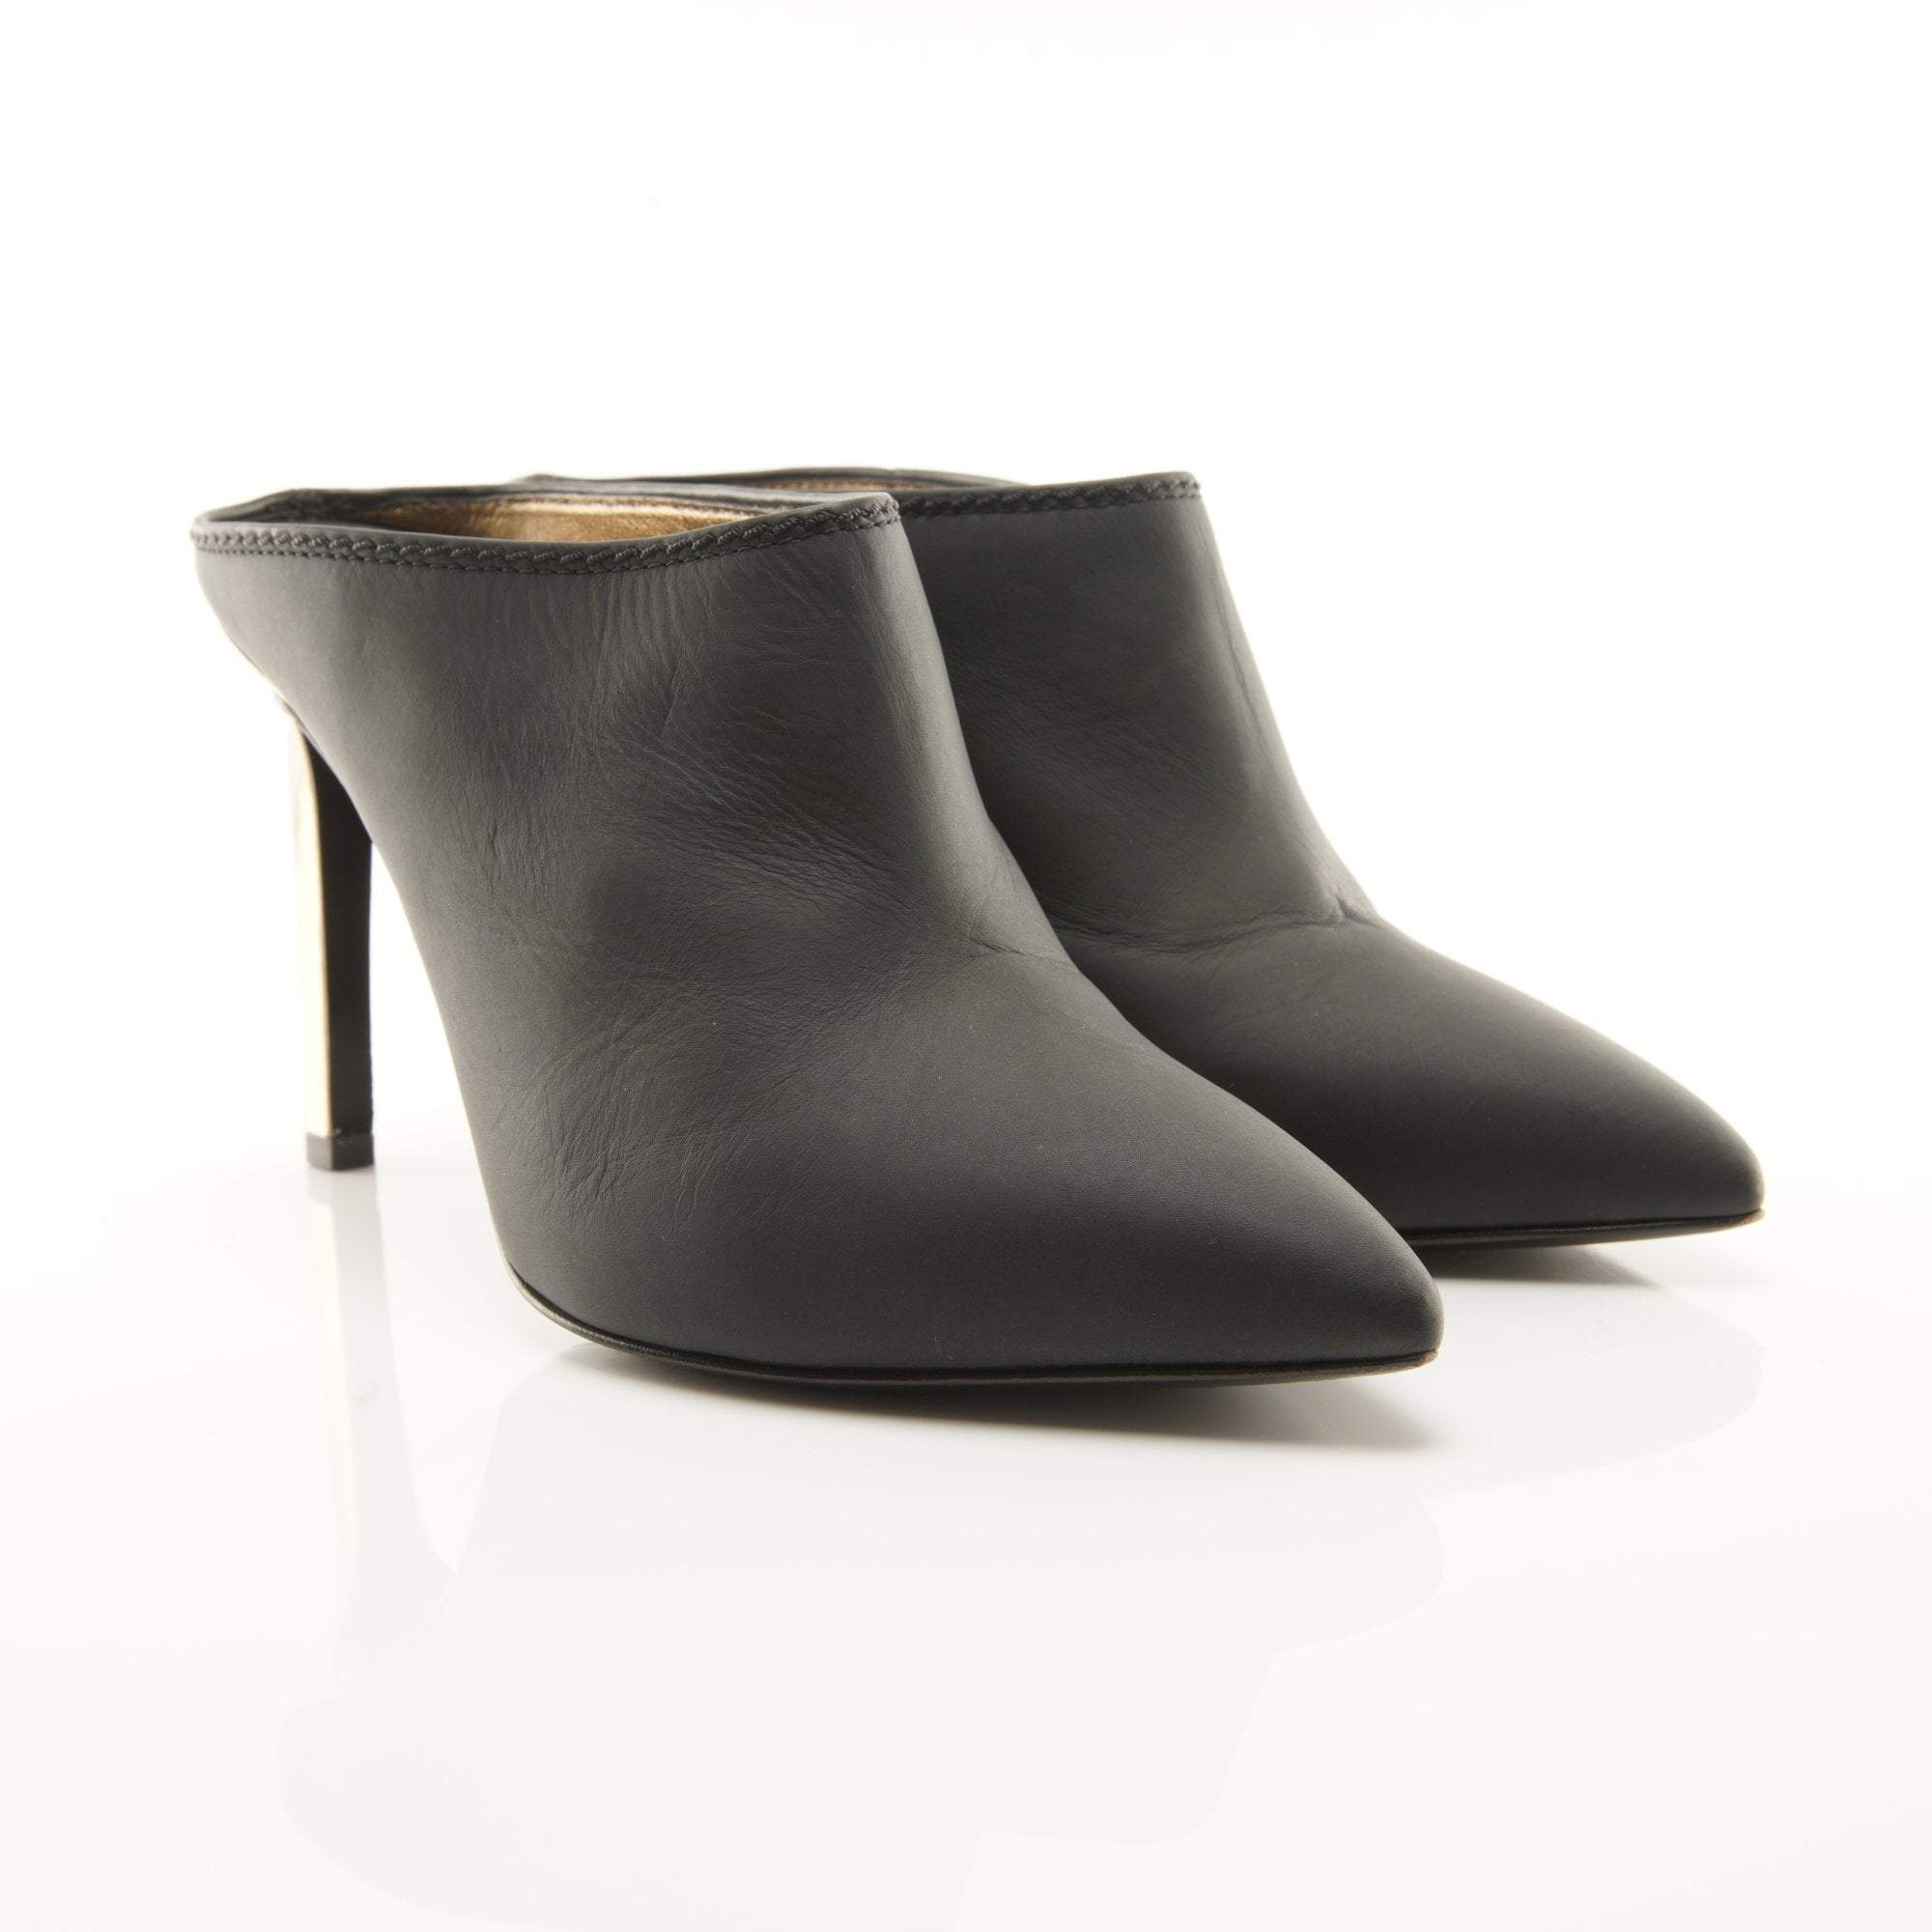 Lanvin Black Leather Mules